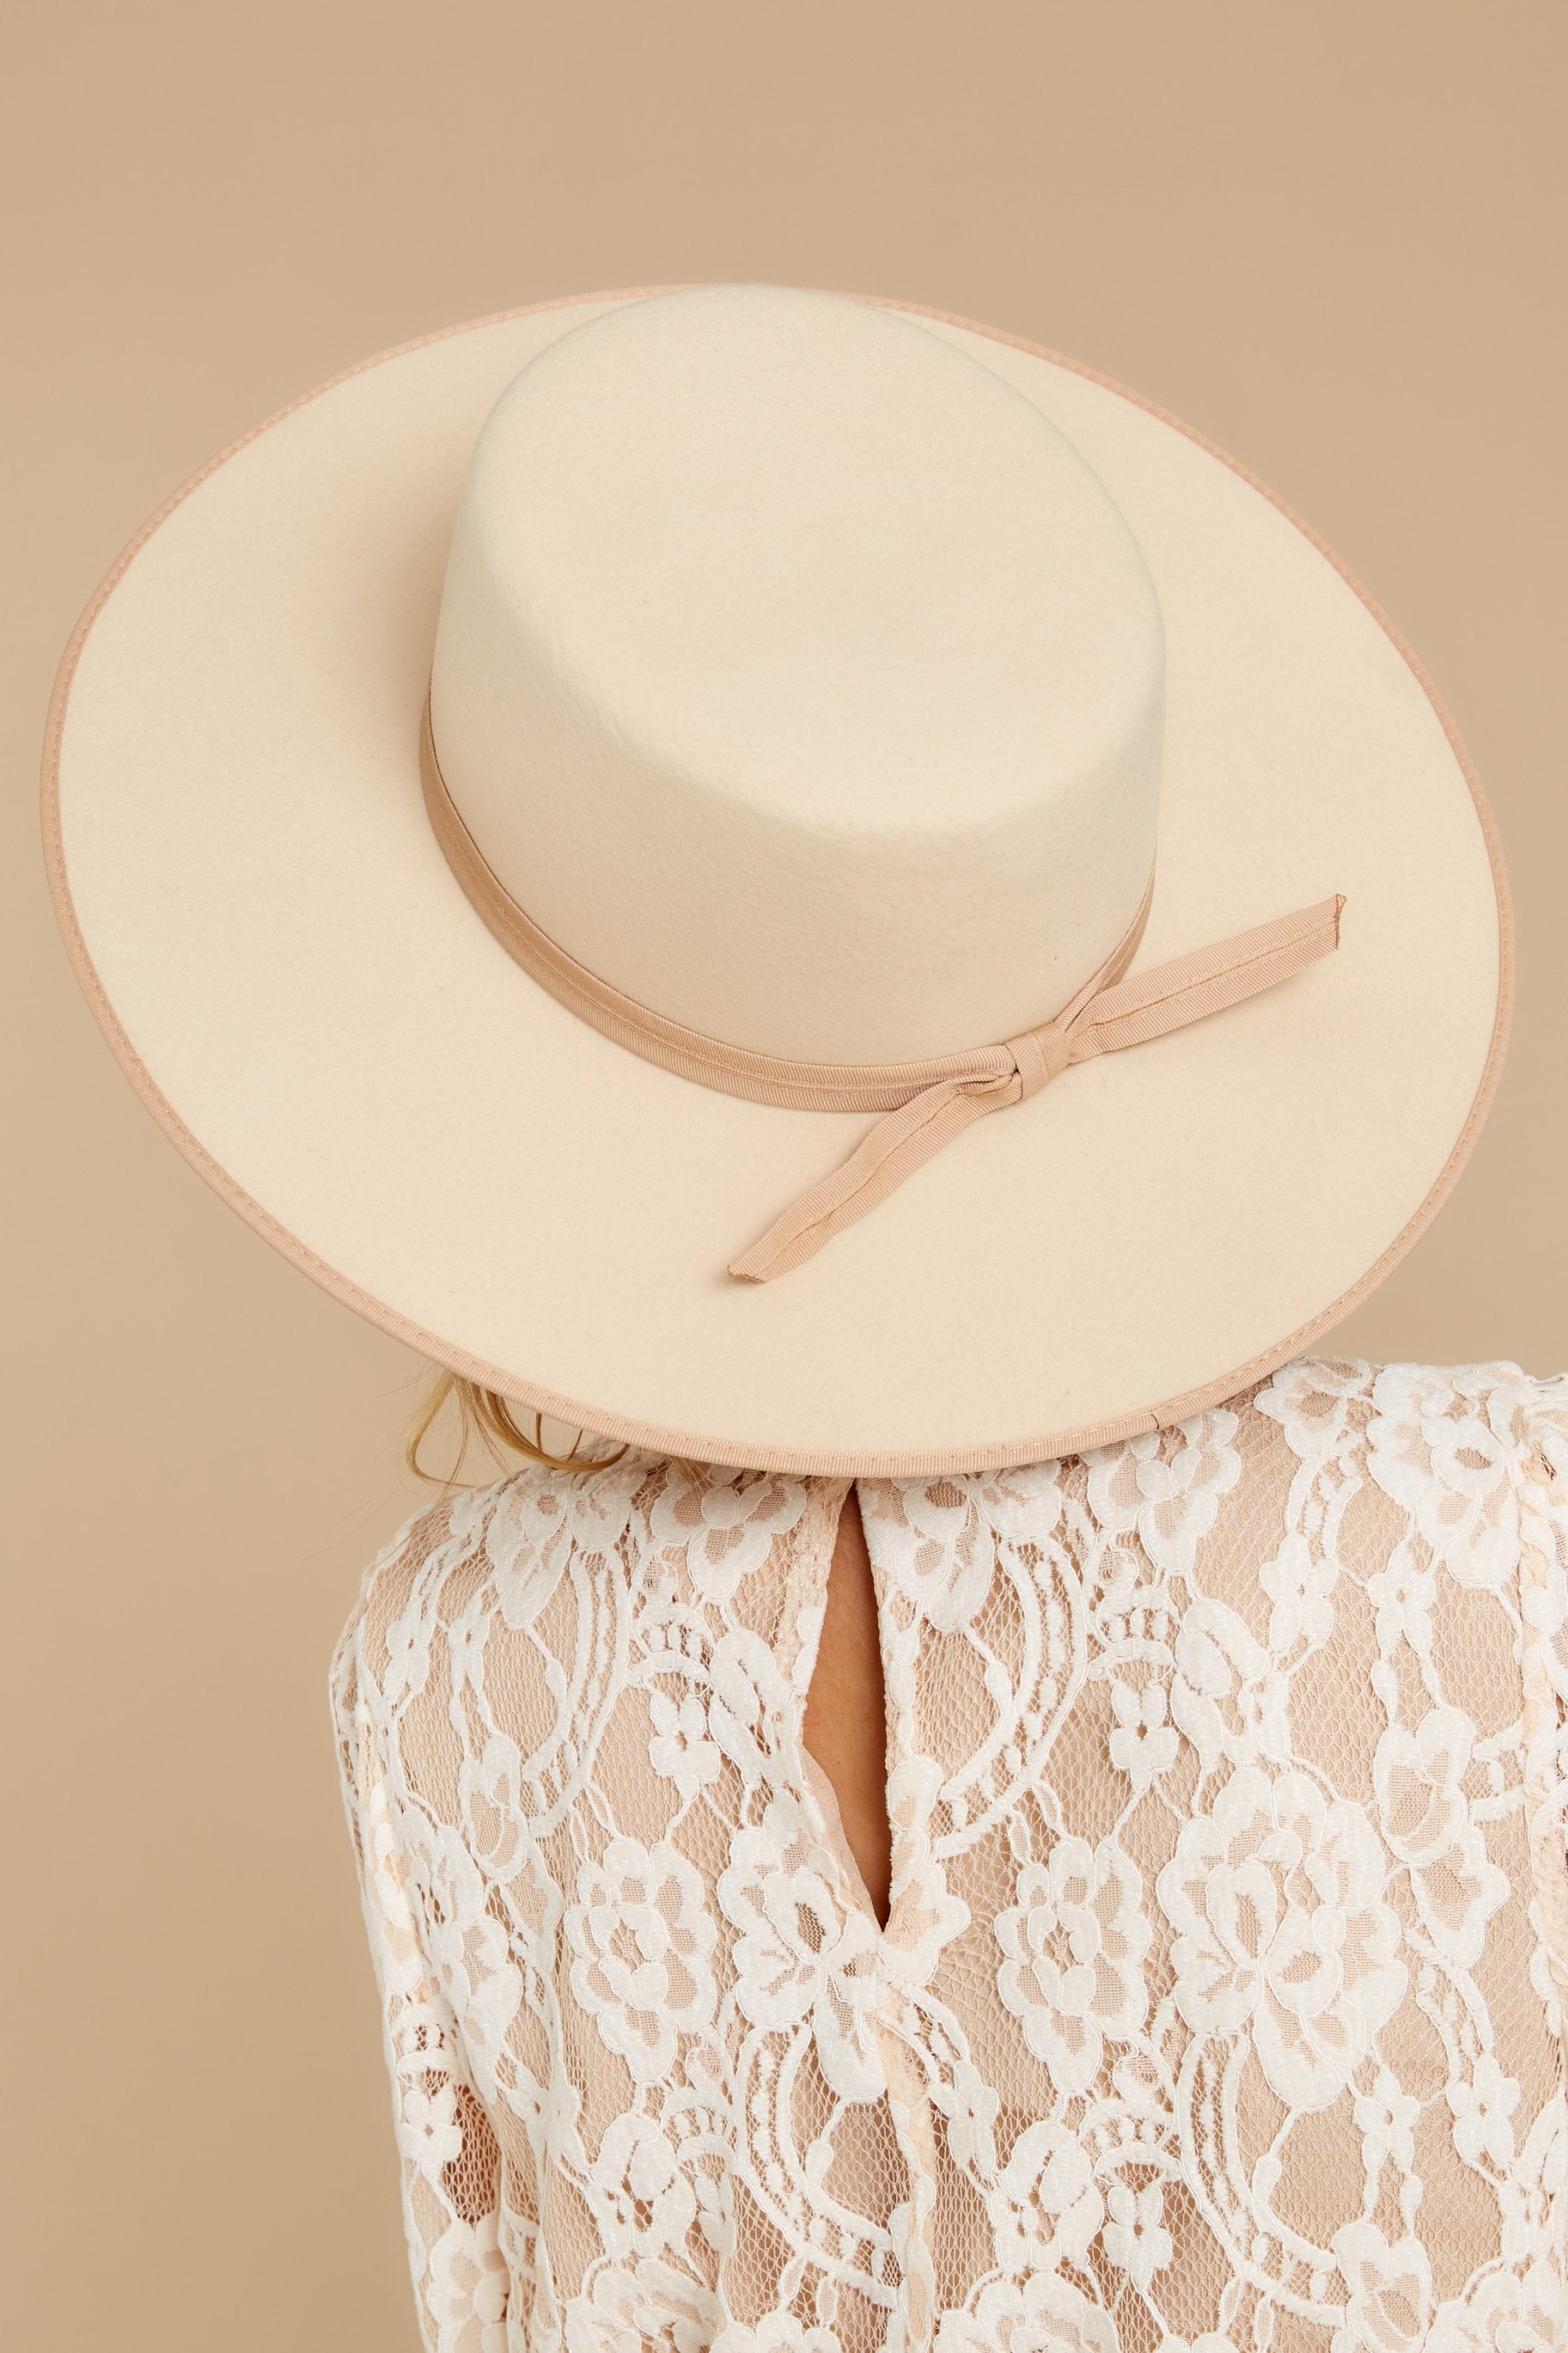 80s Hats, Caps, Visors, Buckets | Women and Men Ivory Rancher Boater Hat Brown $129.00 AT vintagedancer.com